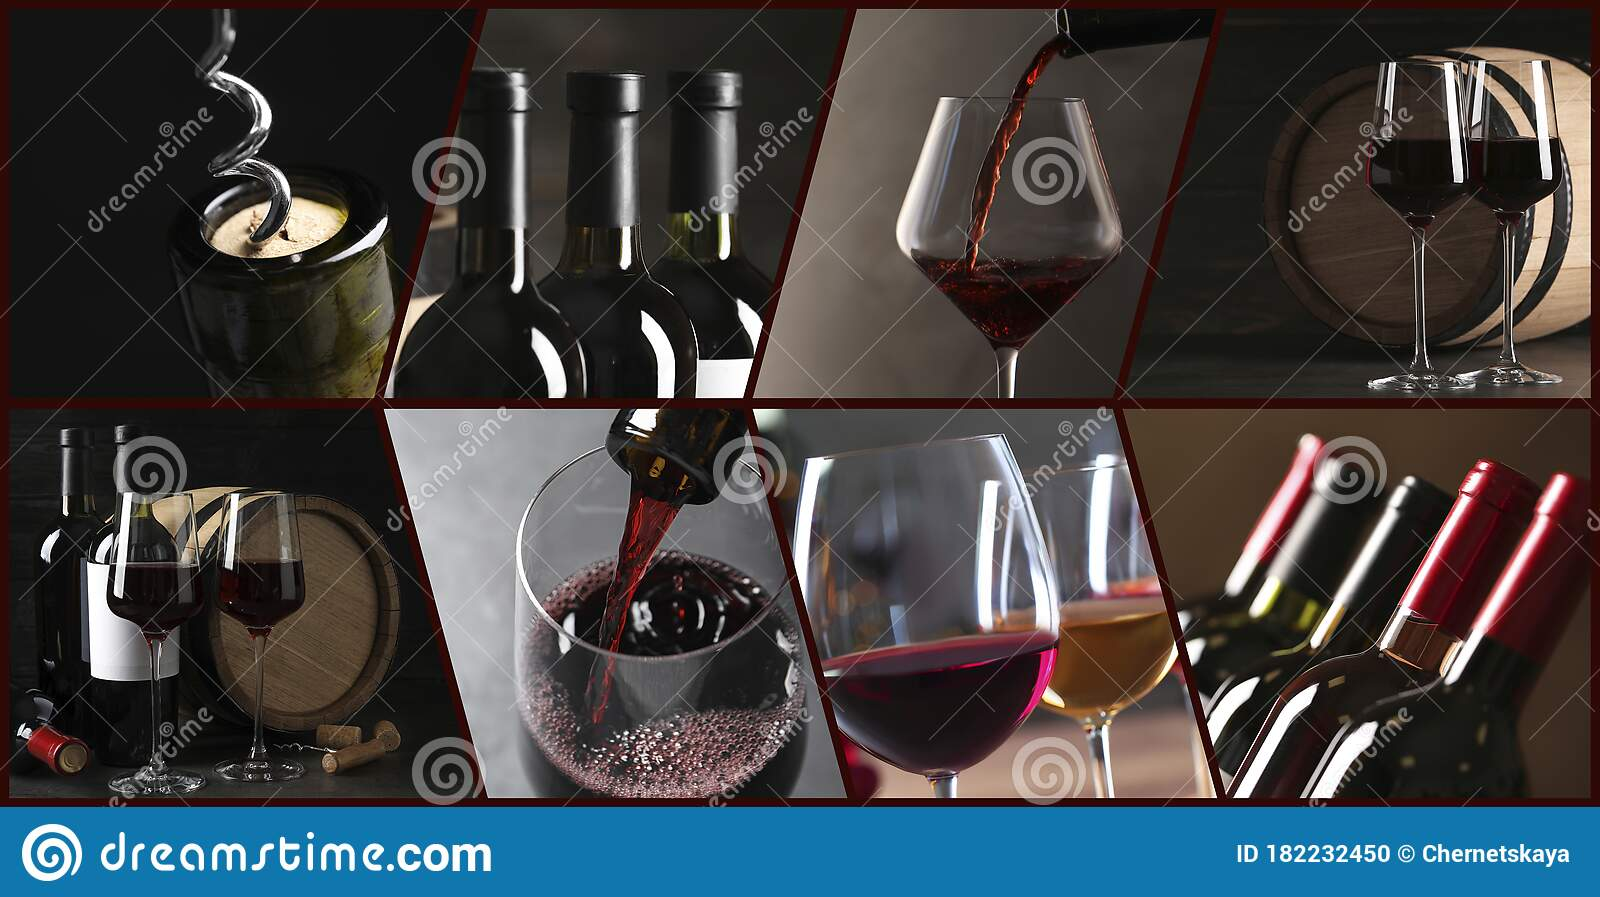 Glasses And Bottles Of Red Wine Banner Design Stock Photo Image Of French Different 182232450